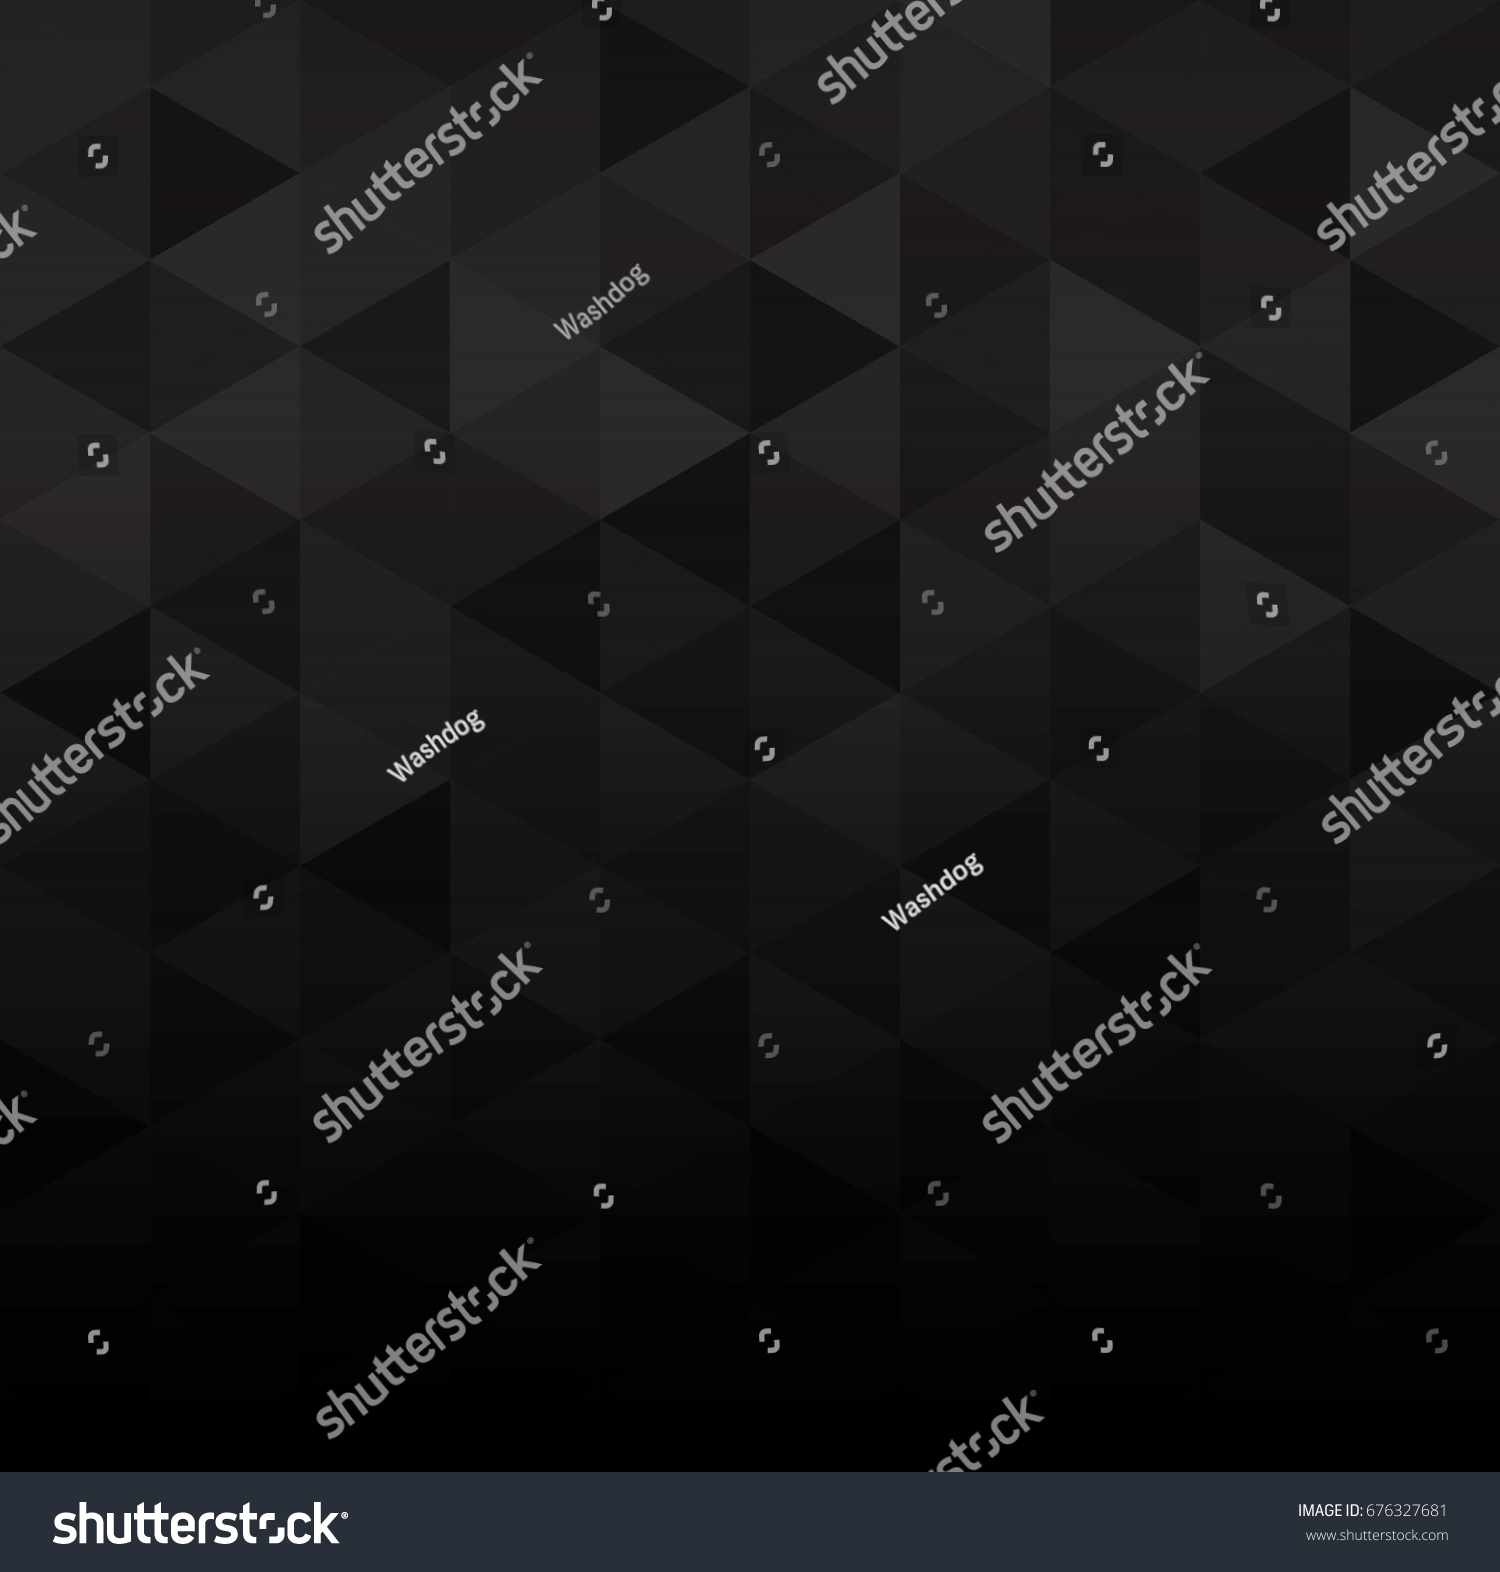 Download 8800 Background Black Retro Paling Keren